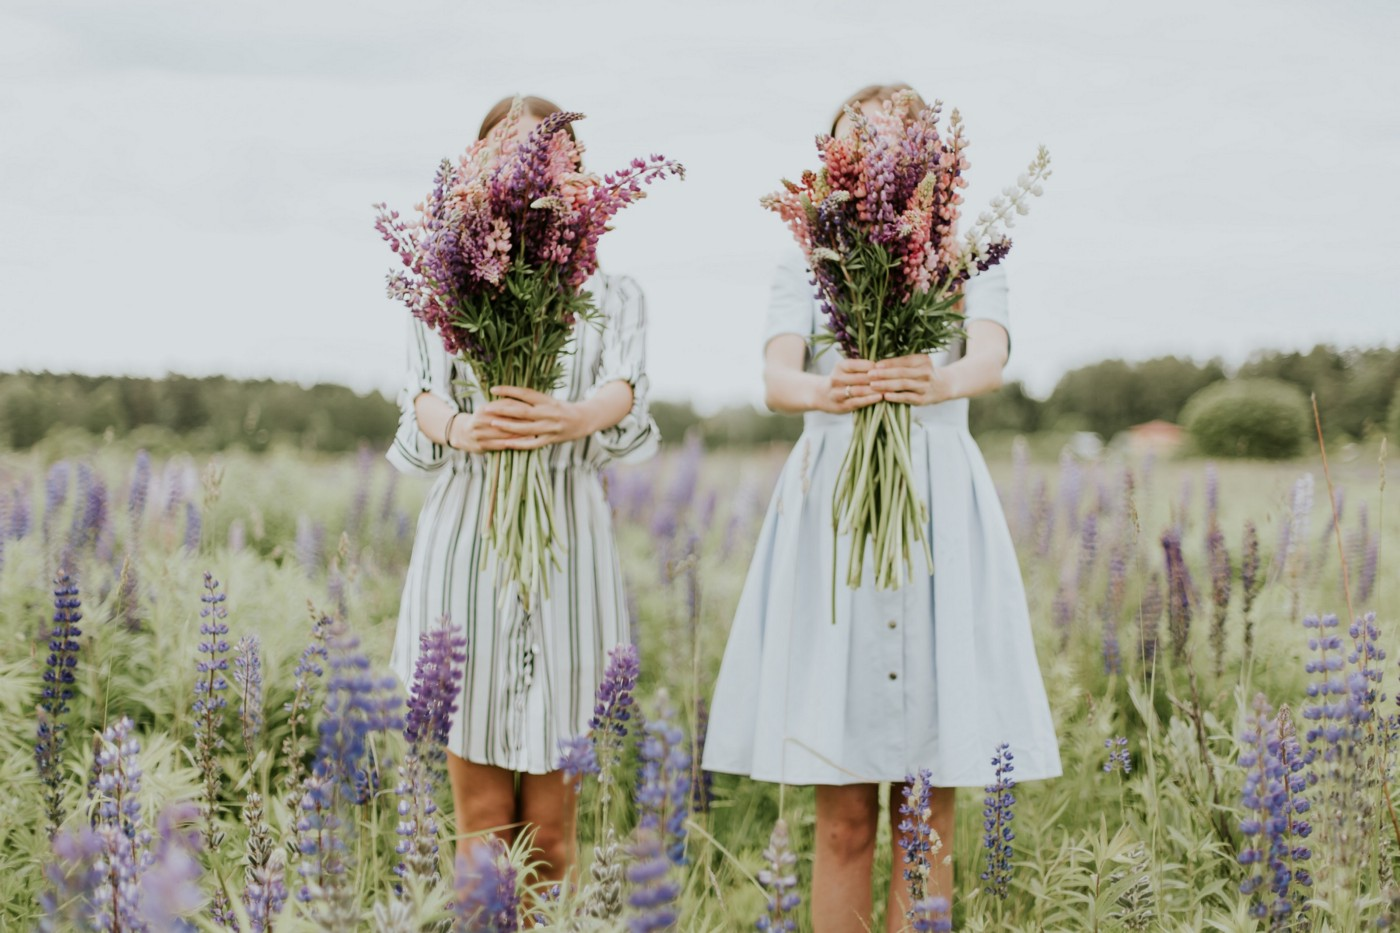 Two sisters in knee-length dresses in a lilac field holding colorful bouquets of flowers outstretched in front of themselves, hiding their faces.